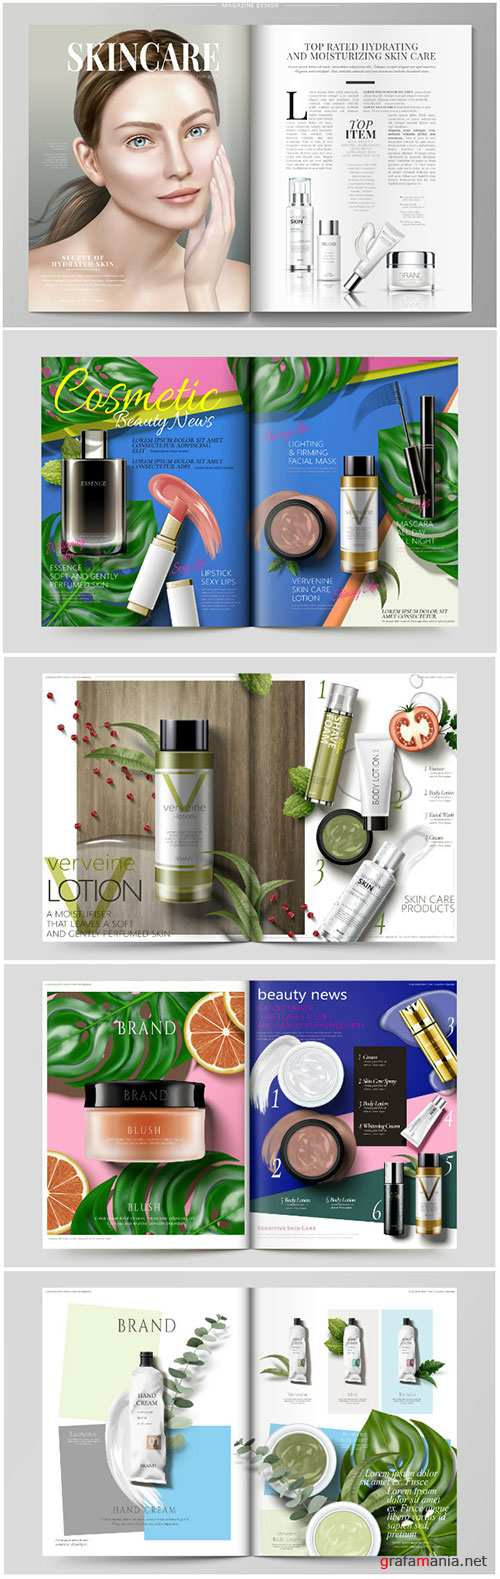 Cosmetic magazine vector template, attractive model with product containers in 3d illustration # 4